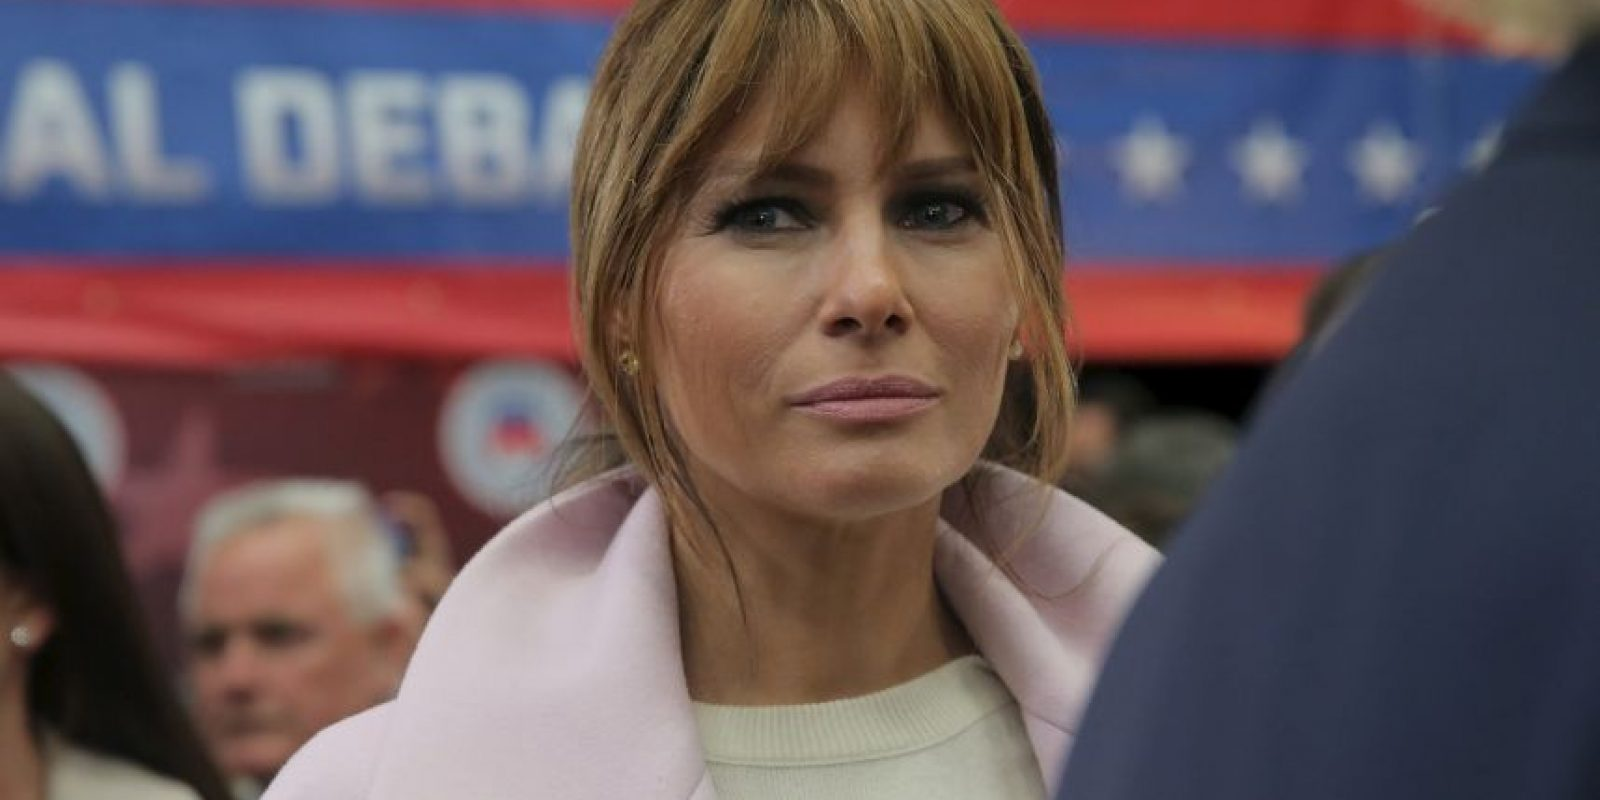 Melania Knauss-Trump nació el 26 de abril de 1970 Foto: Getty Images